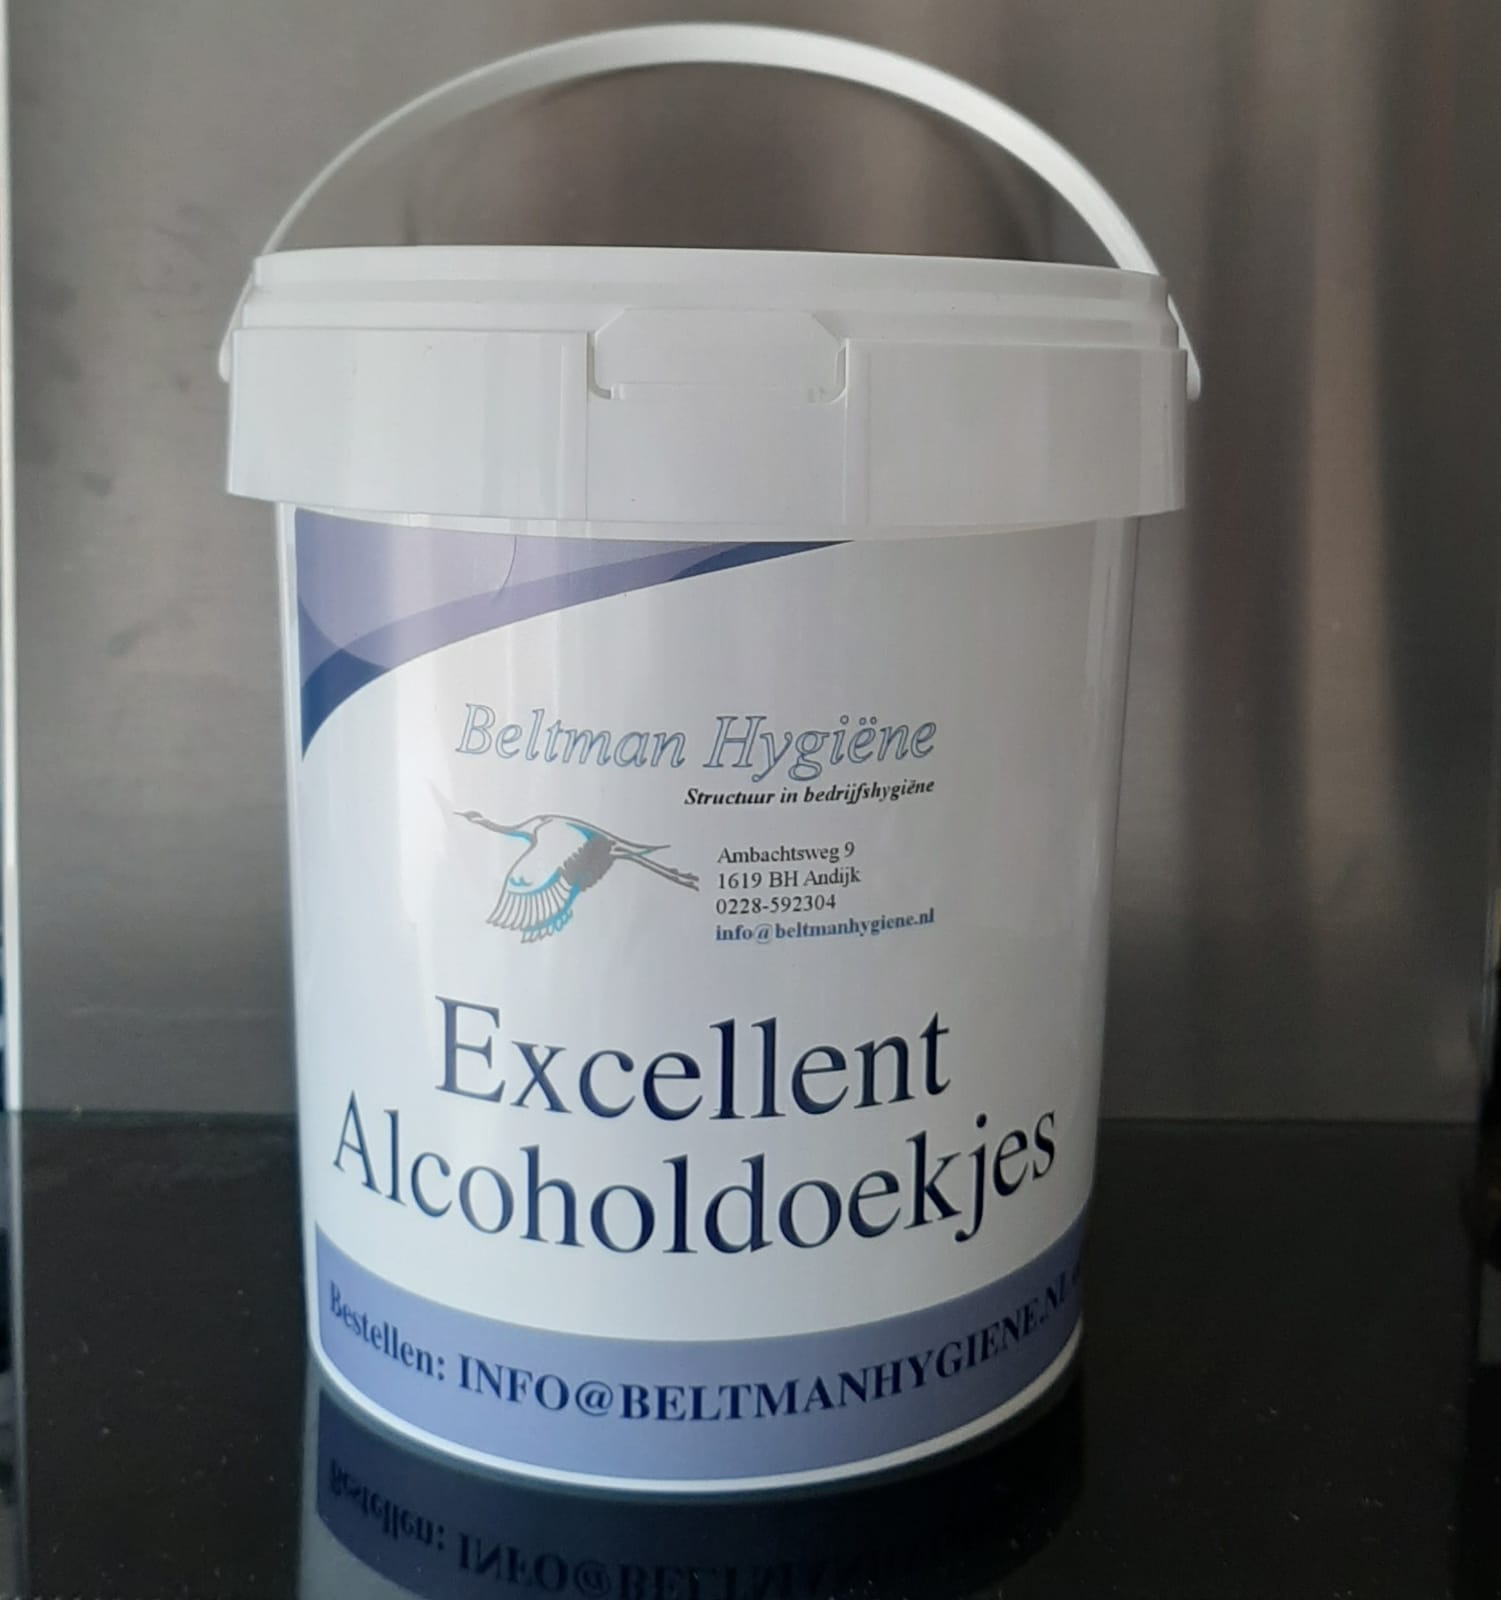 Excellent Alcoholdoekjes dispenser Image